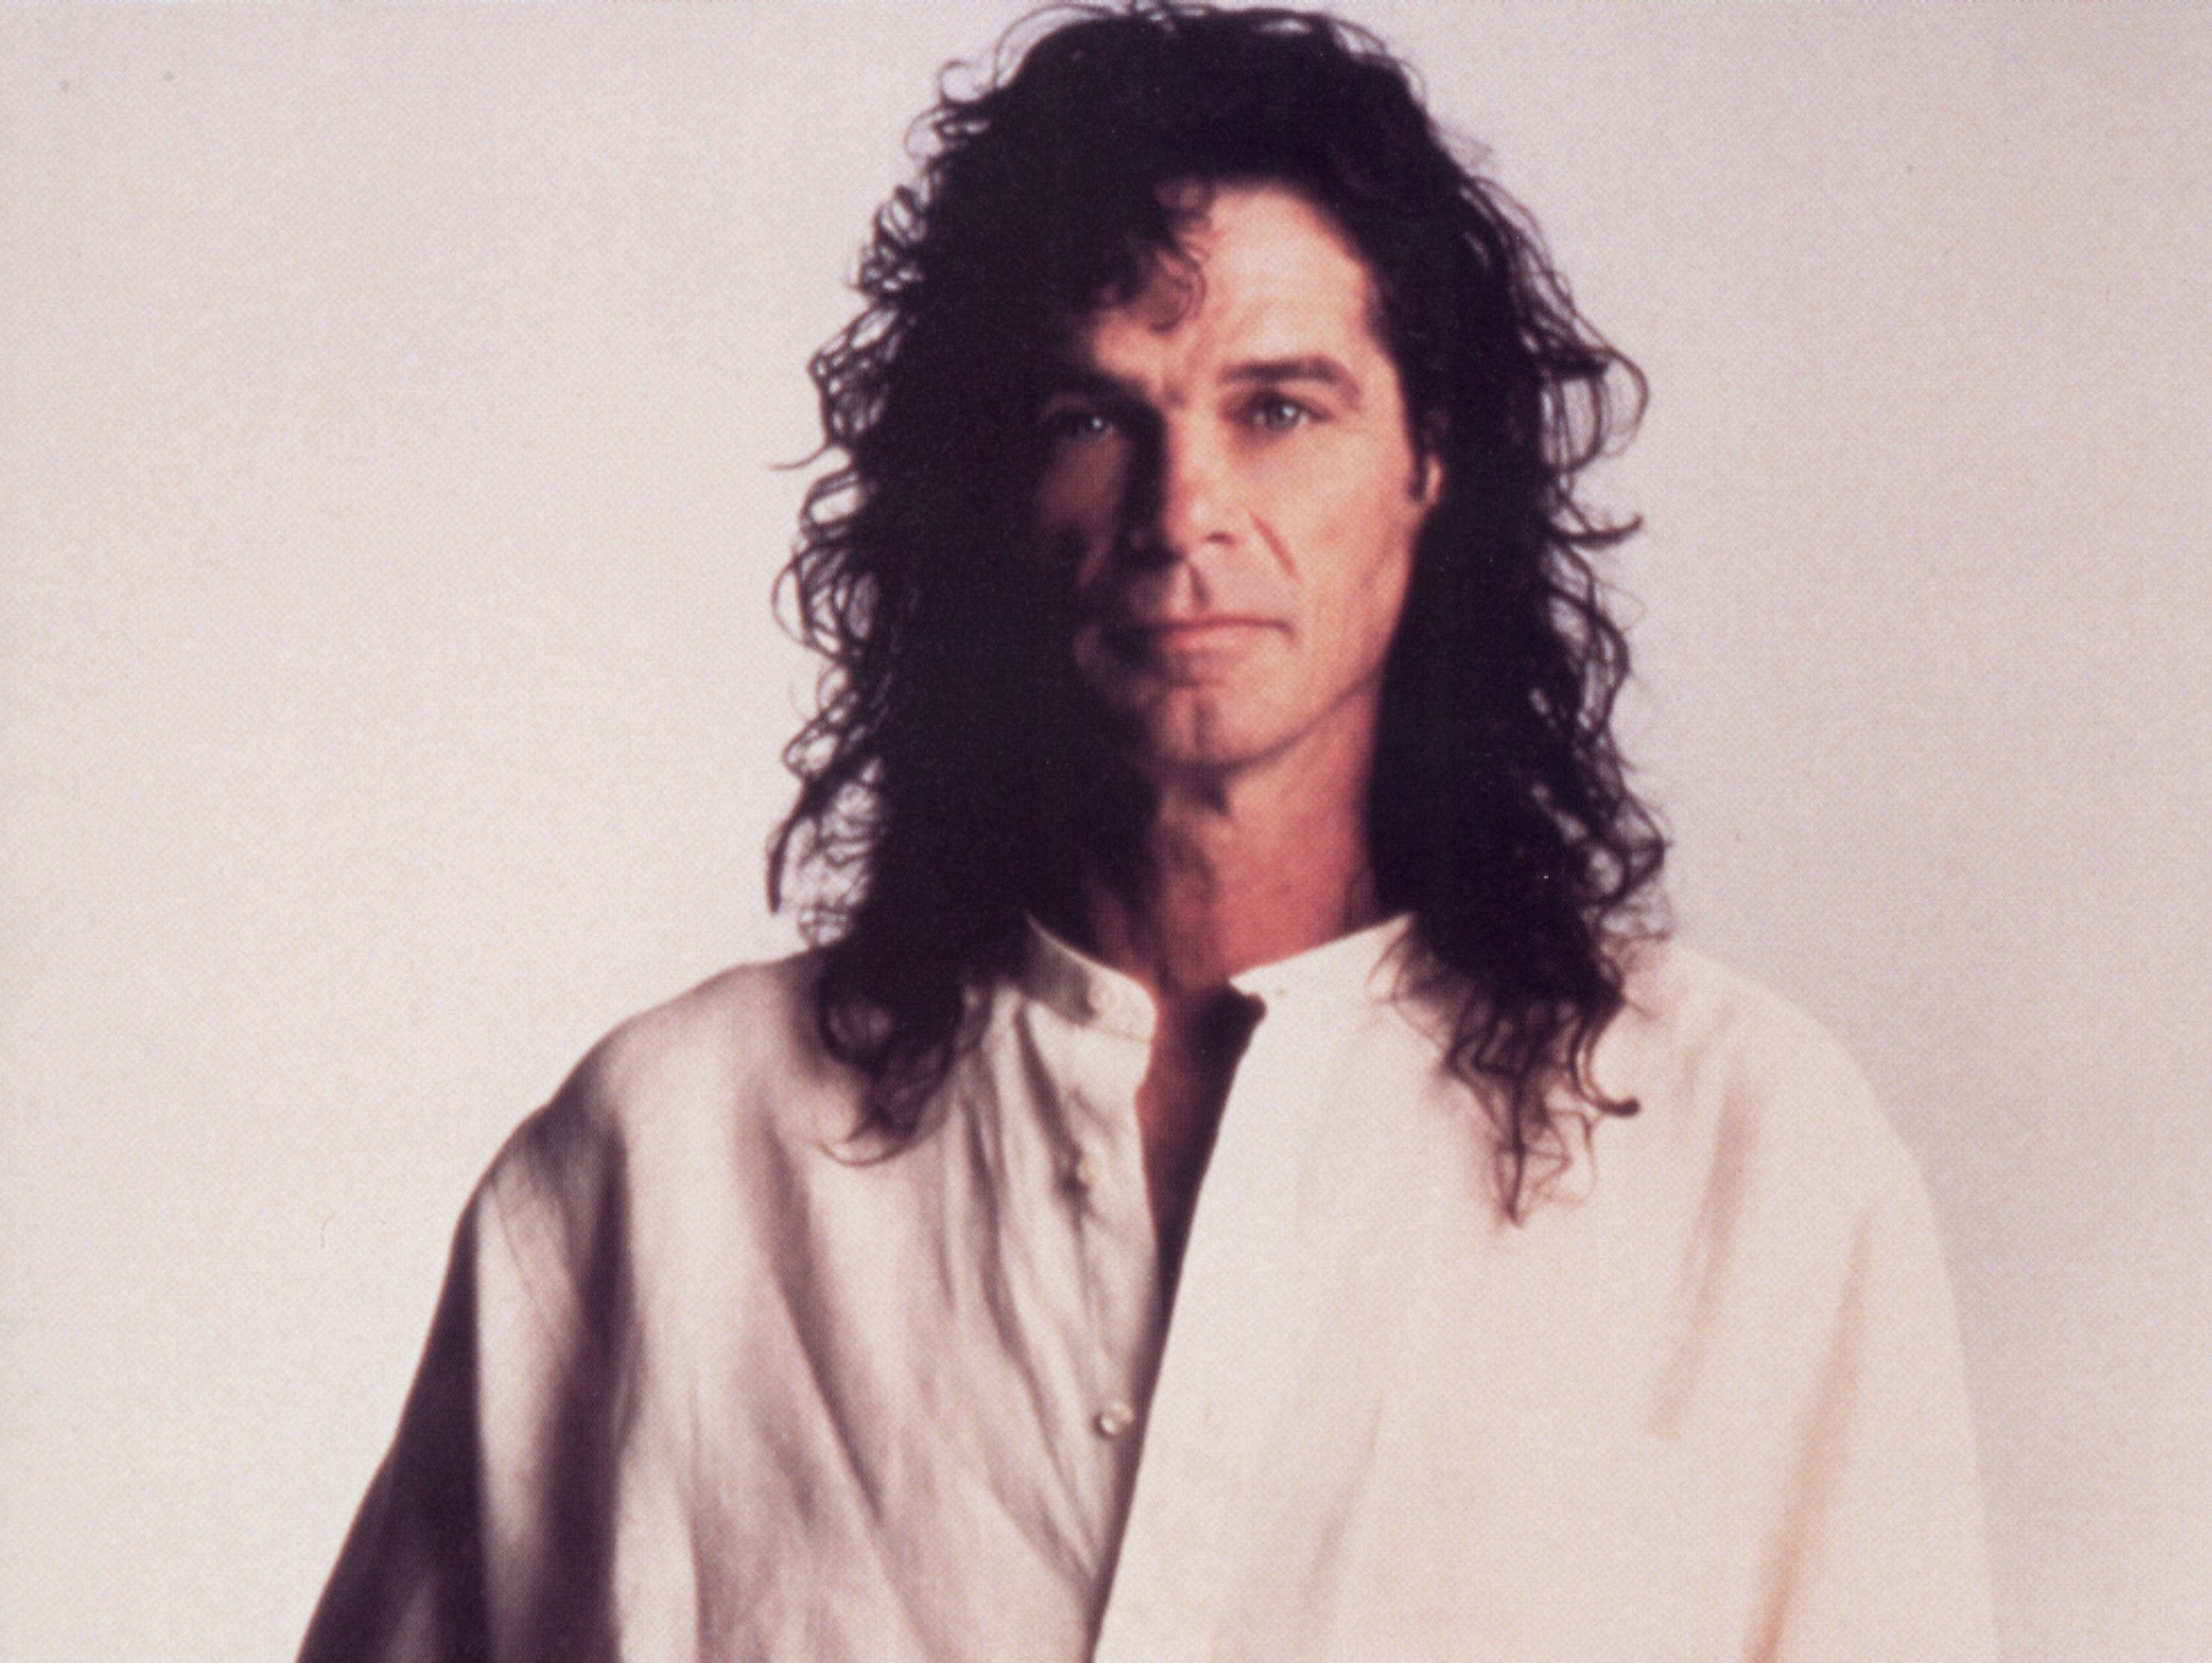 B.J. Thomas is seen in a promotional image circa 1995.